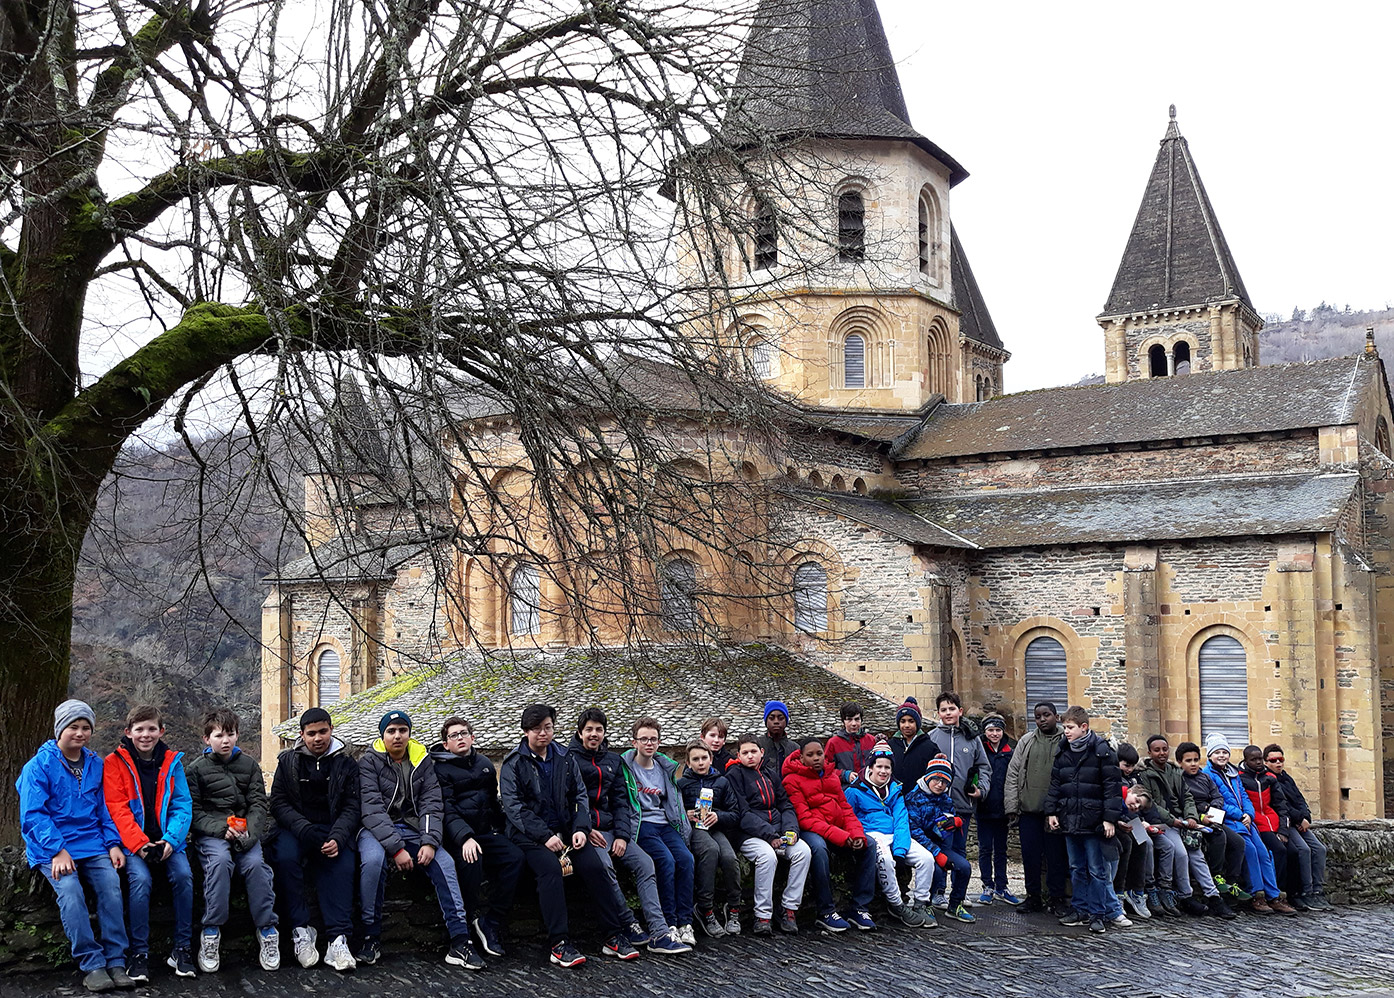 Lower School boys enjoy action-packed trip to Vic sur Cere